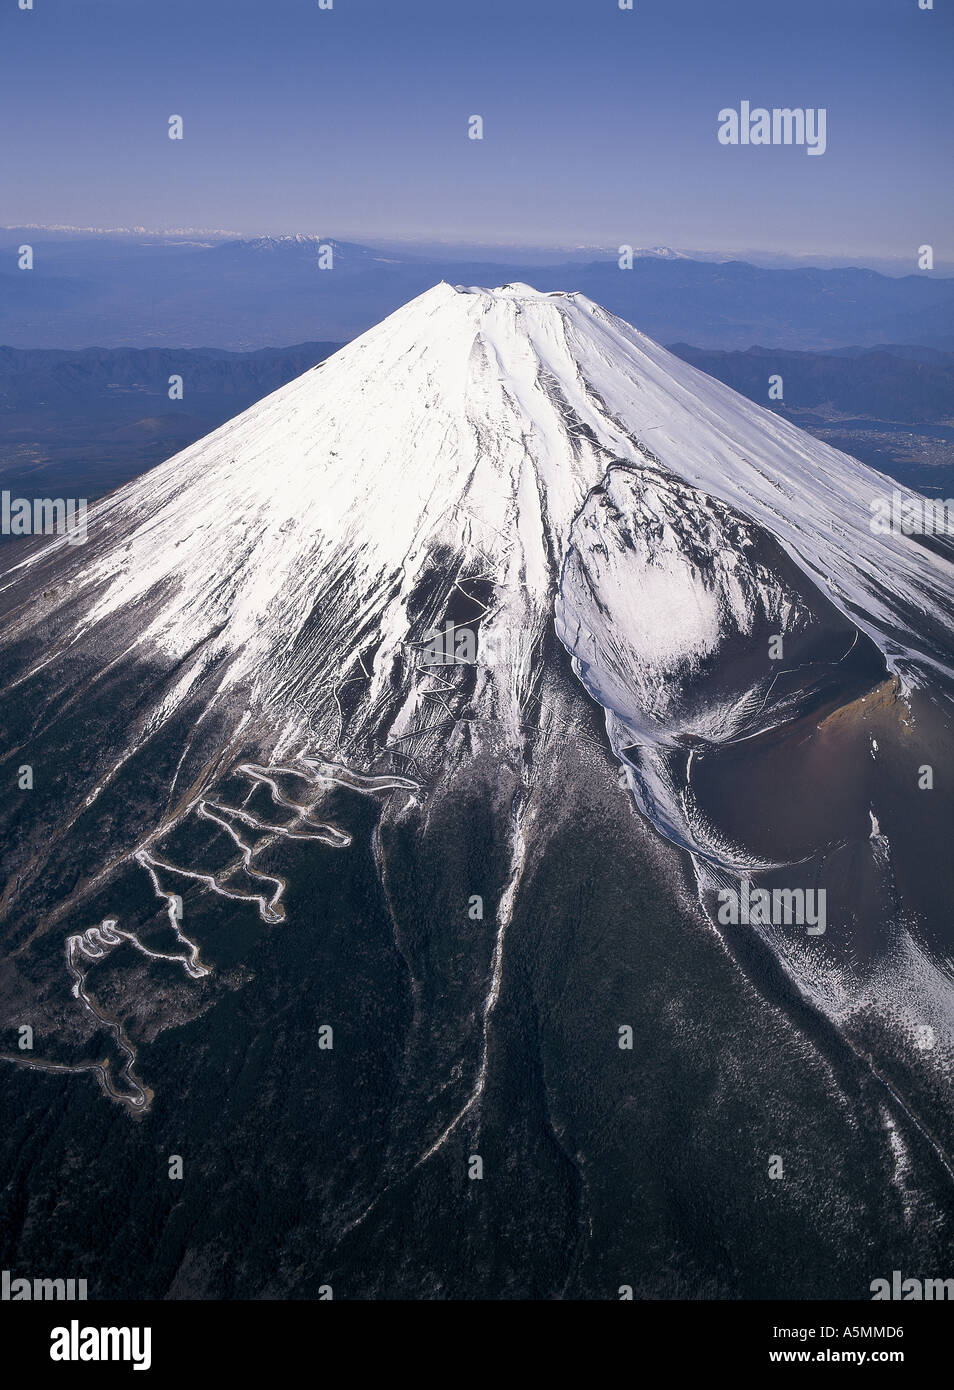 Aerial view of Mt Fuji Japan - Stock Image